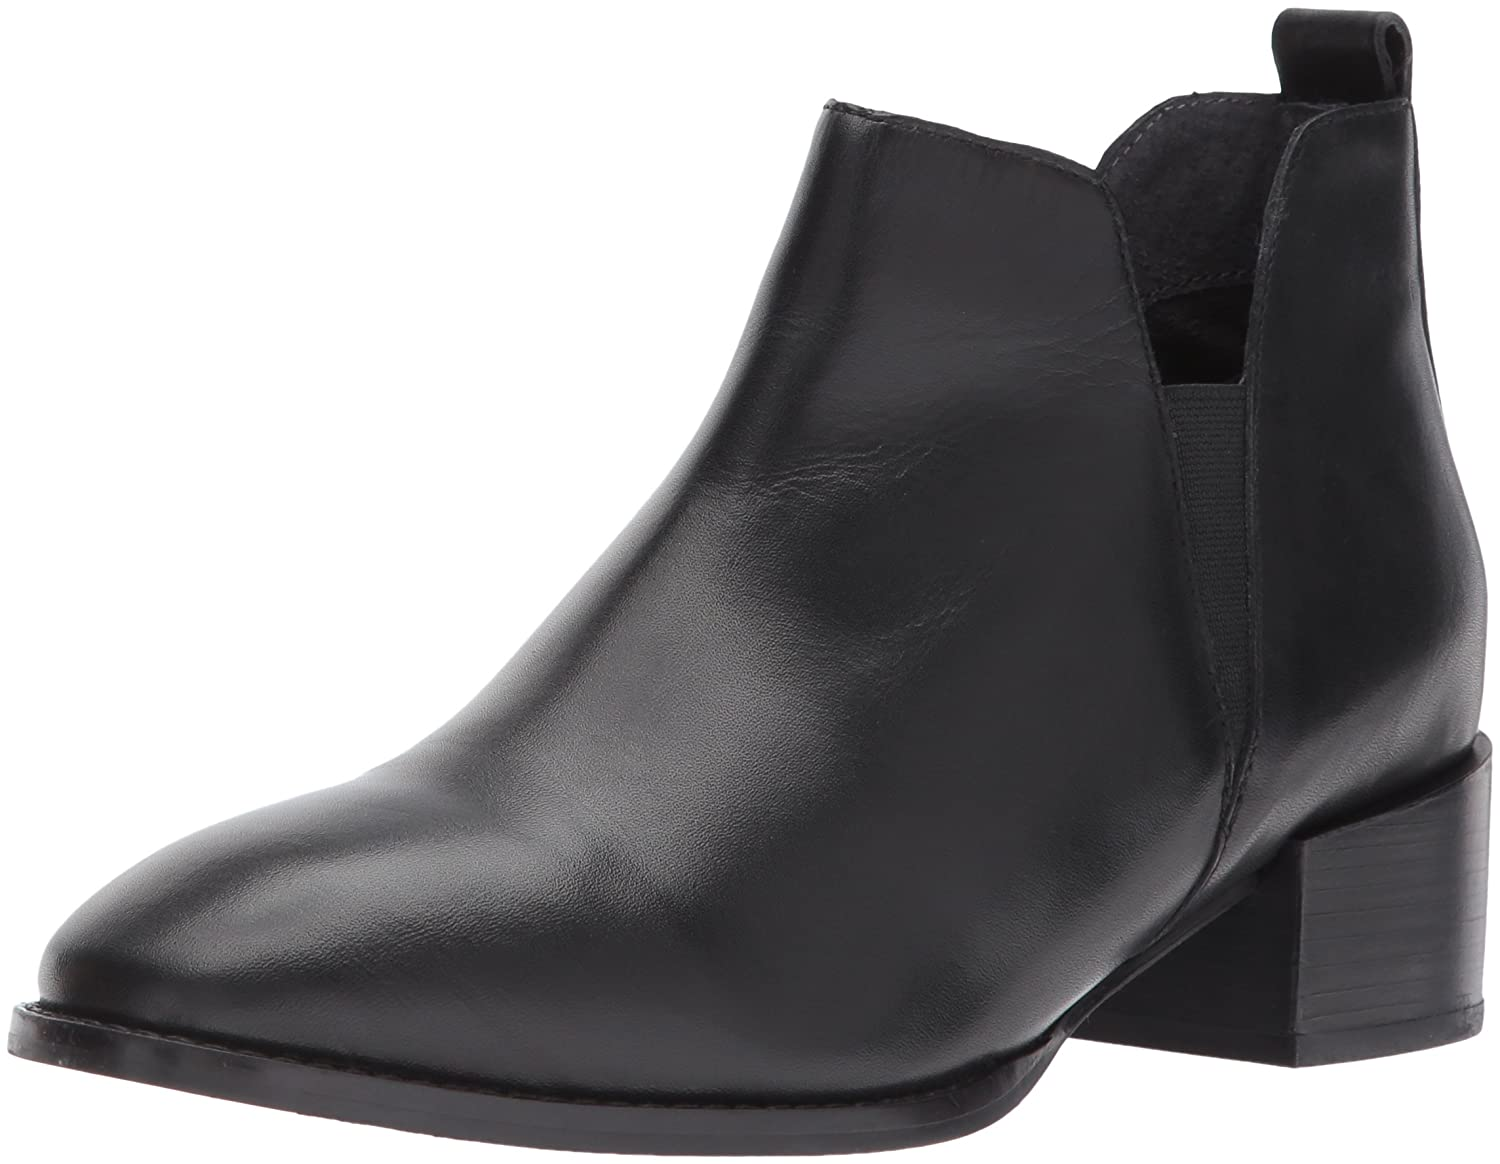 Seychelles Women's Offstage Ankle Boot B06XDLL2MW 6.5 B(M) US|Black